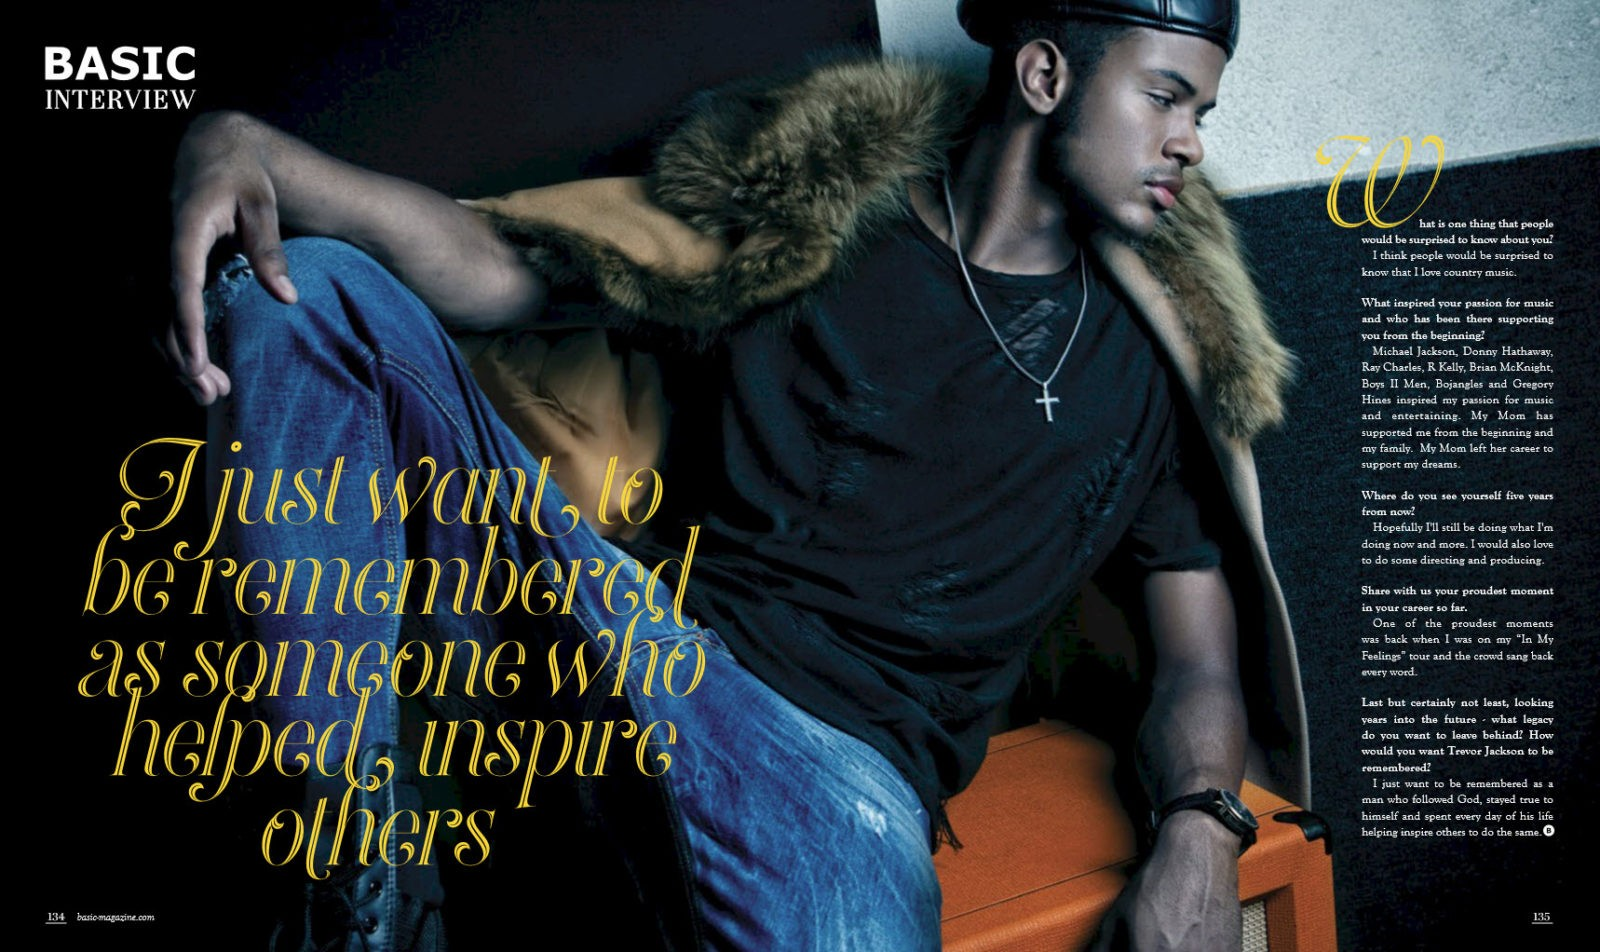 trevor jackson on the block basic magazine you see yourself five years from now hopefully i ll still be doing what i m doing now and more i would also love to do some directing and producing